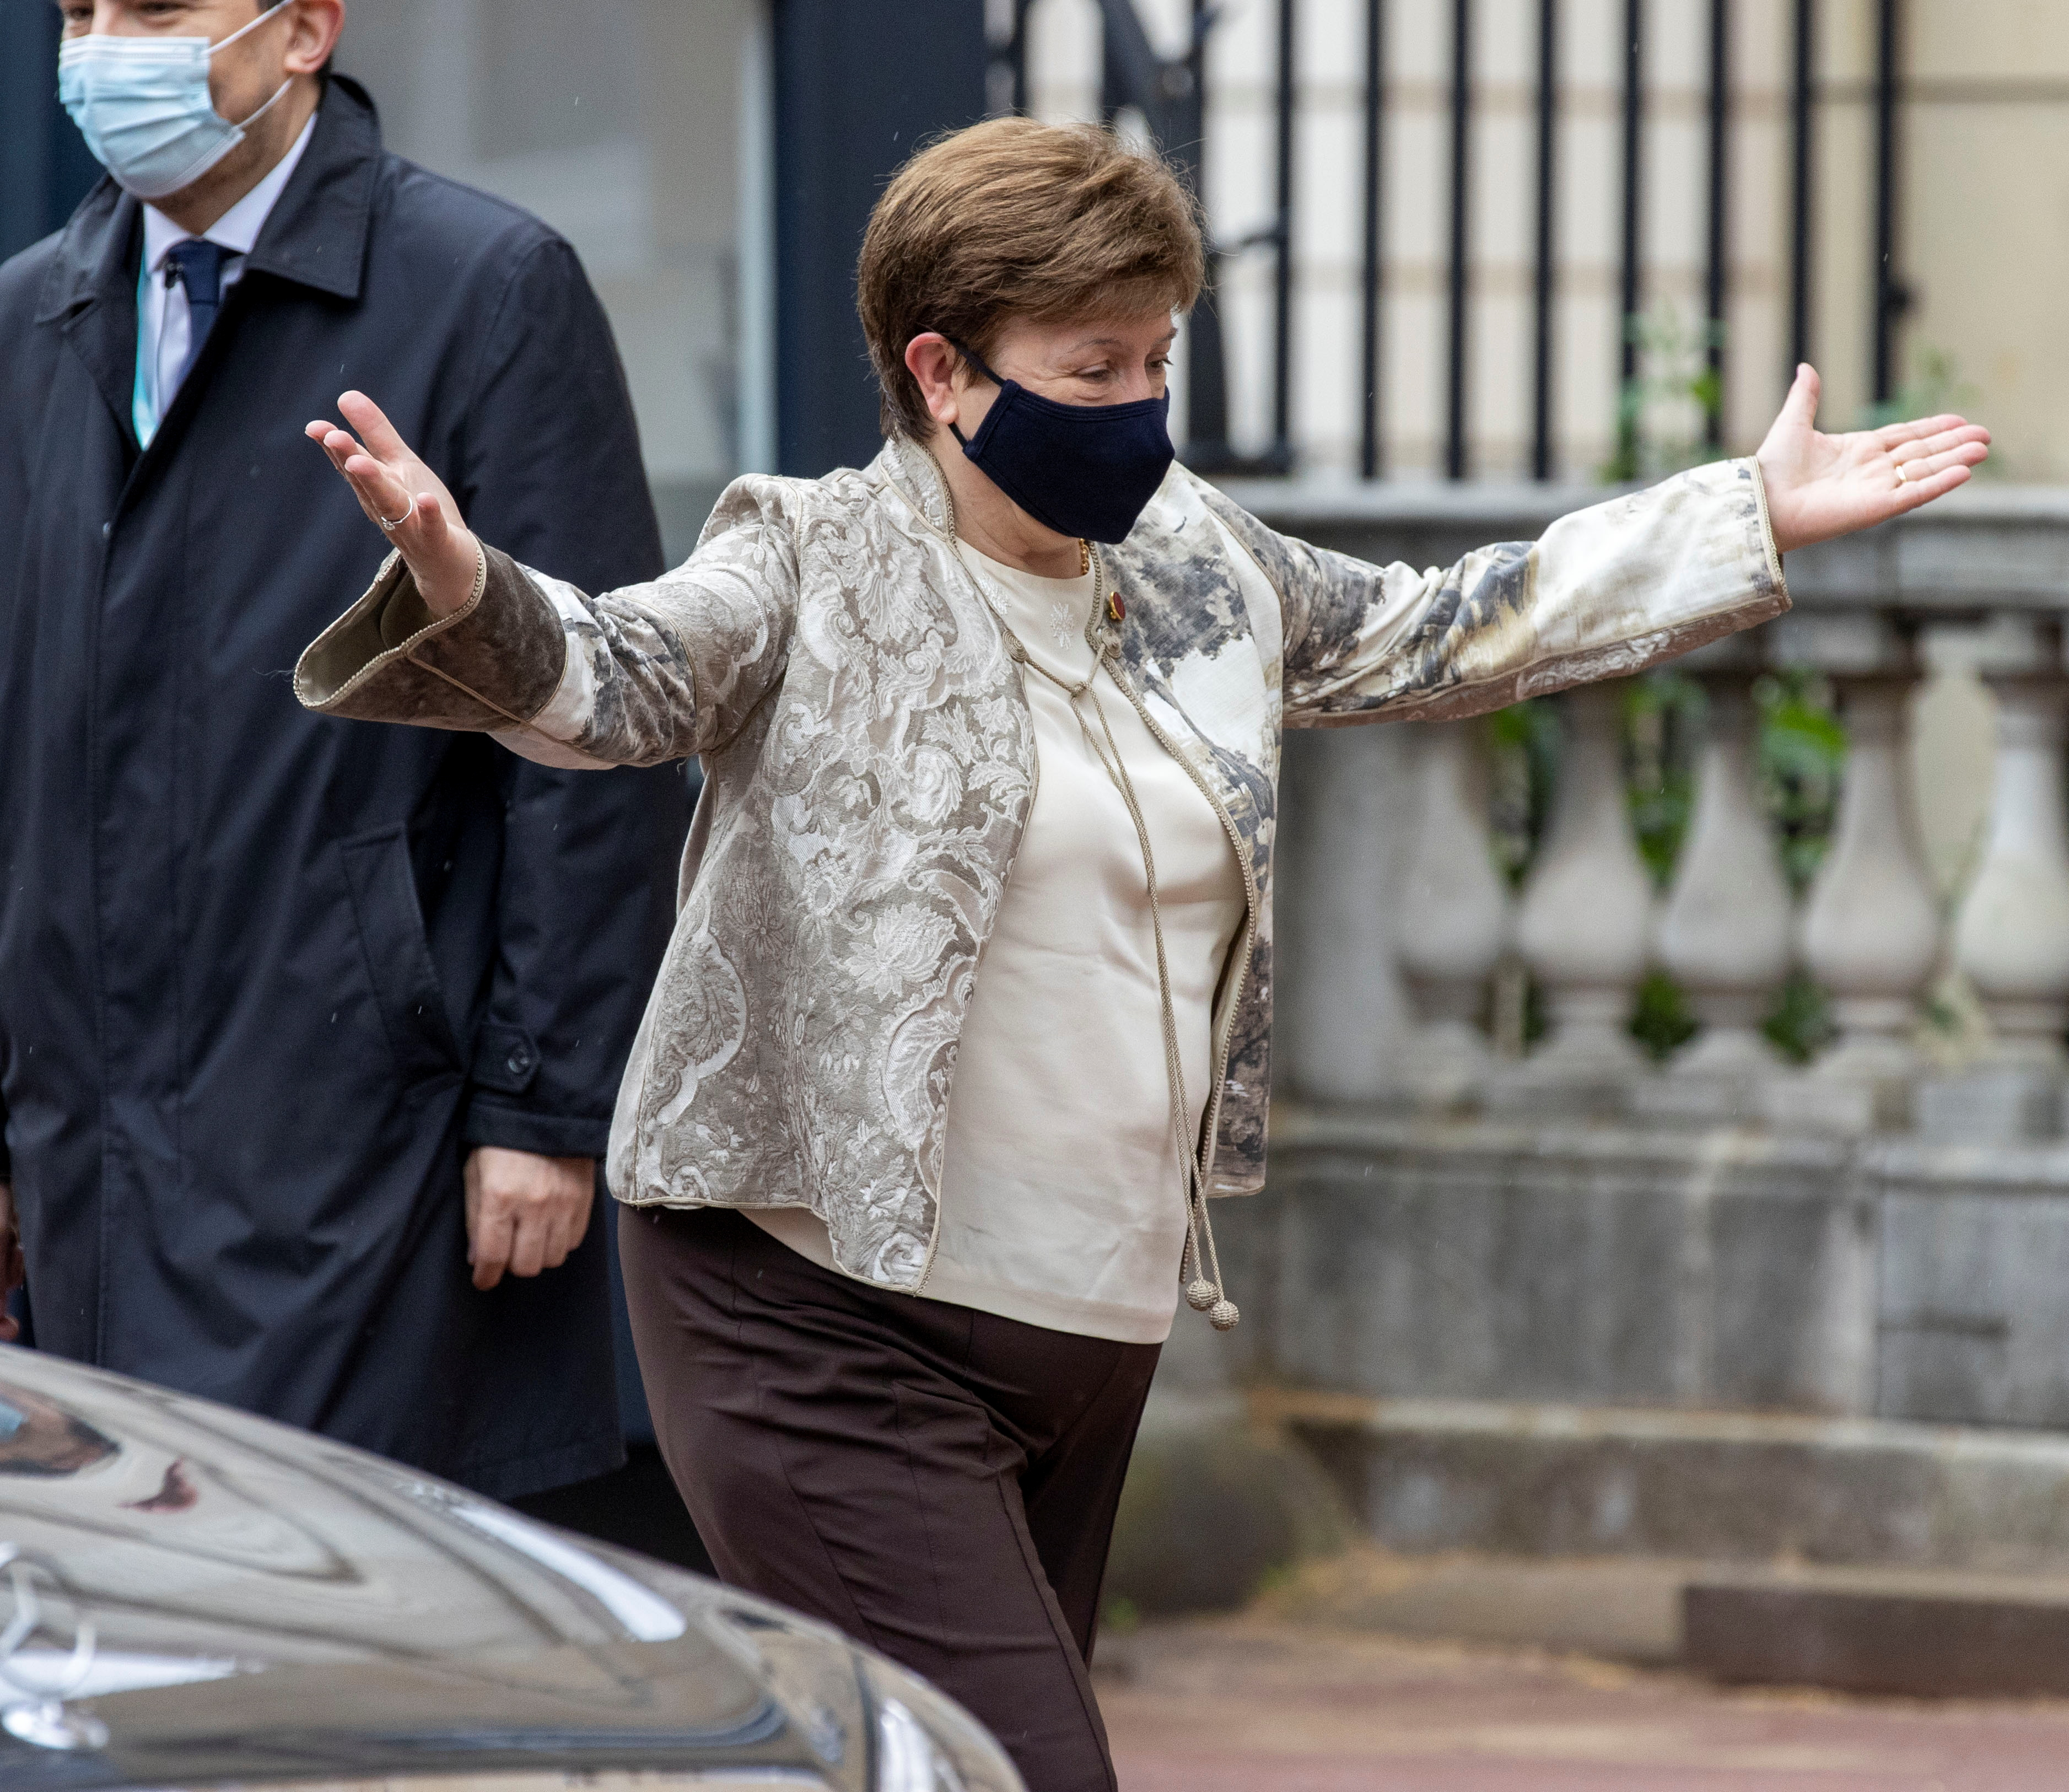 Managing Director of the International Monetary Fund Kristalina Georgieva reacts as she arrives to the G7 finance ministers meeting, at Lancaster House in London, Britain June 4, 2021. Steve Reigate/Pool via REUTERS